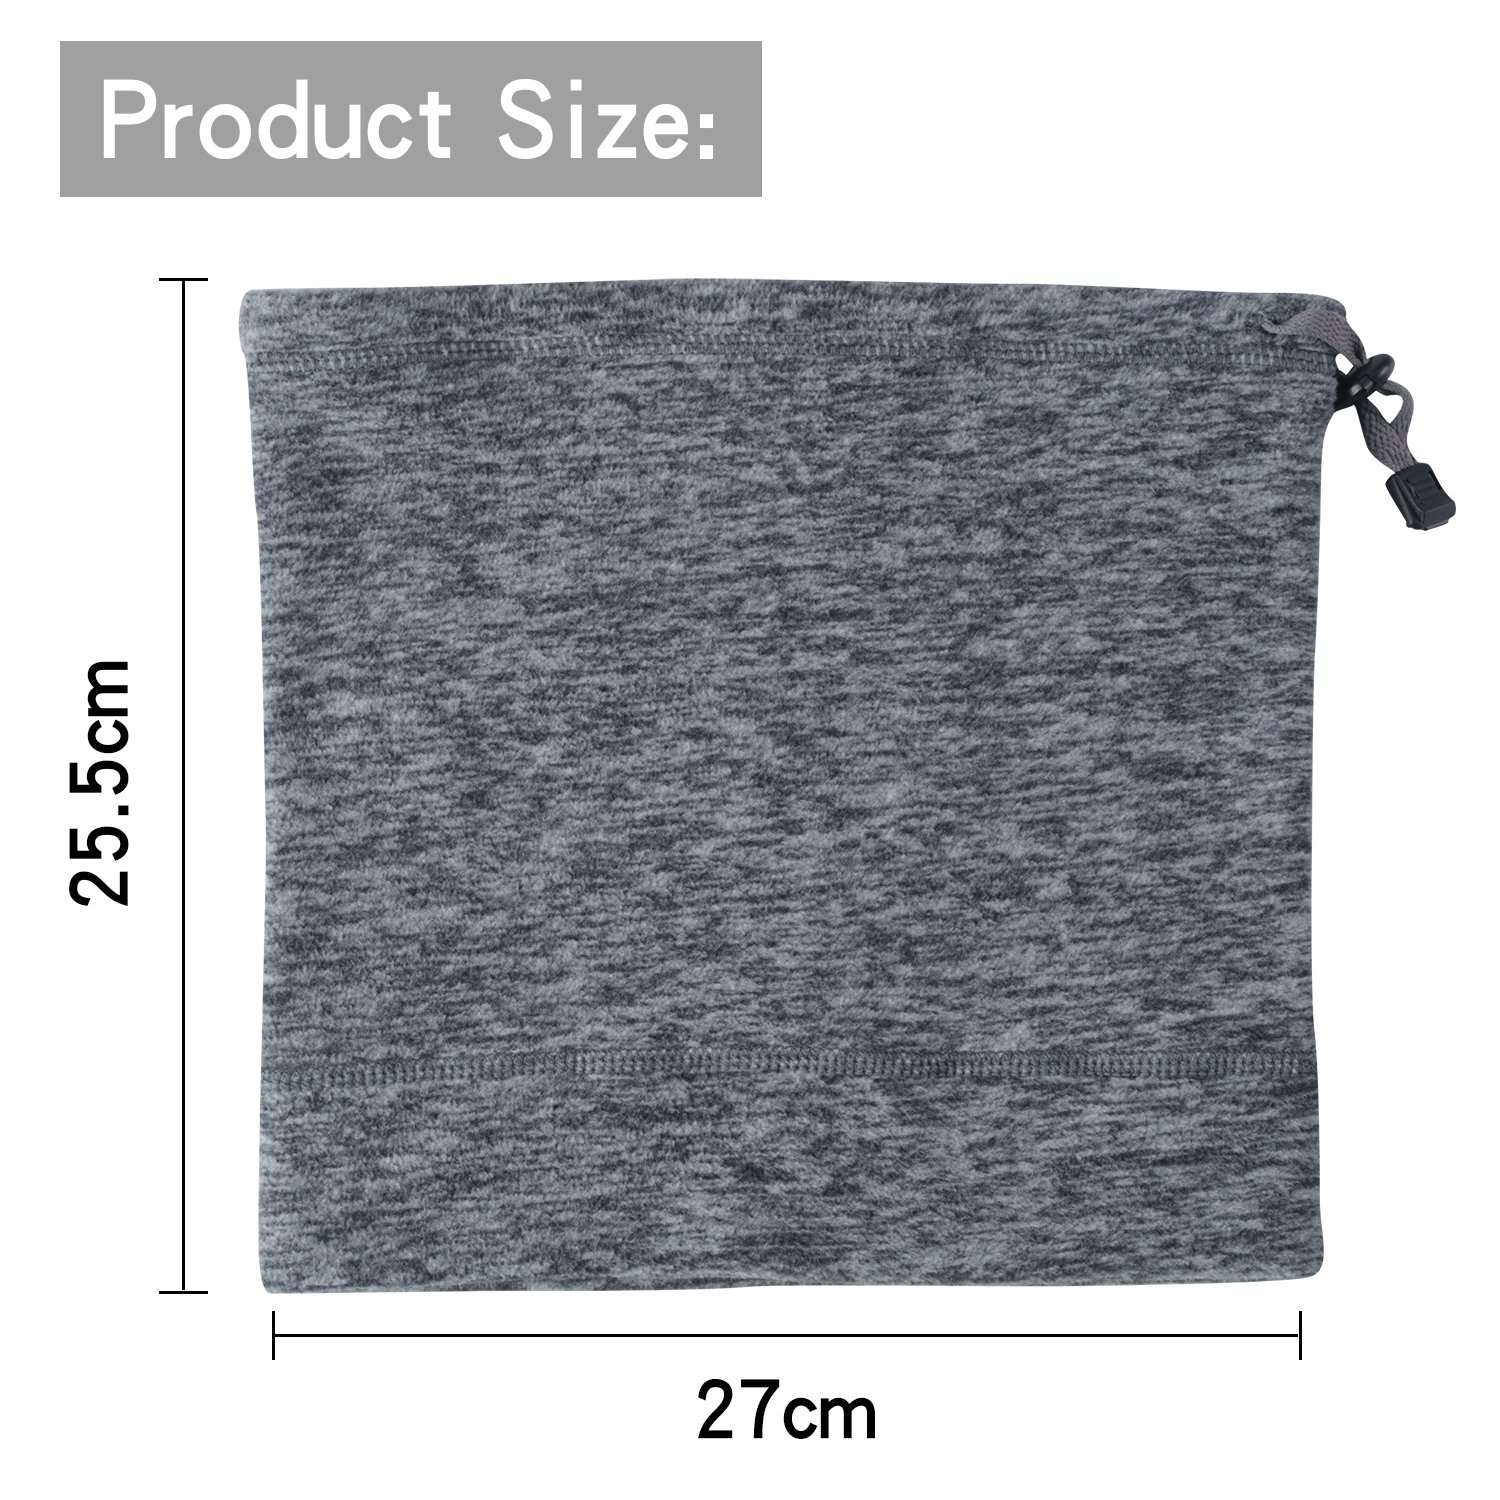 THINDUST 1 or 2 Pack Fleece Neck Warmer Soft Guangzhou yuzhong Fishing Articles Co Adjustable Neck Gaiter Winter Cold Weather Ski Face Mask Ltd